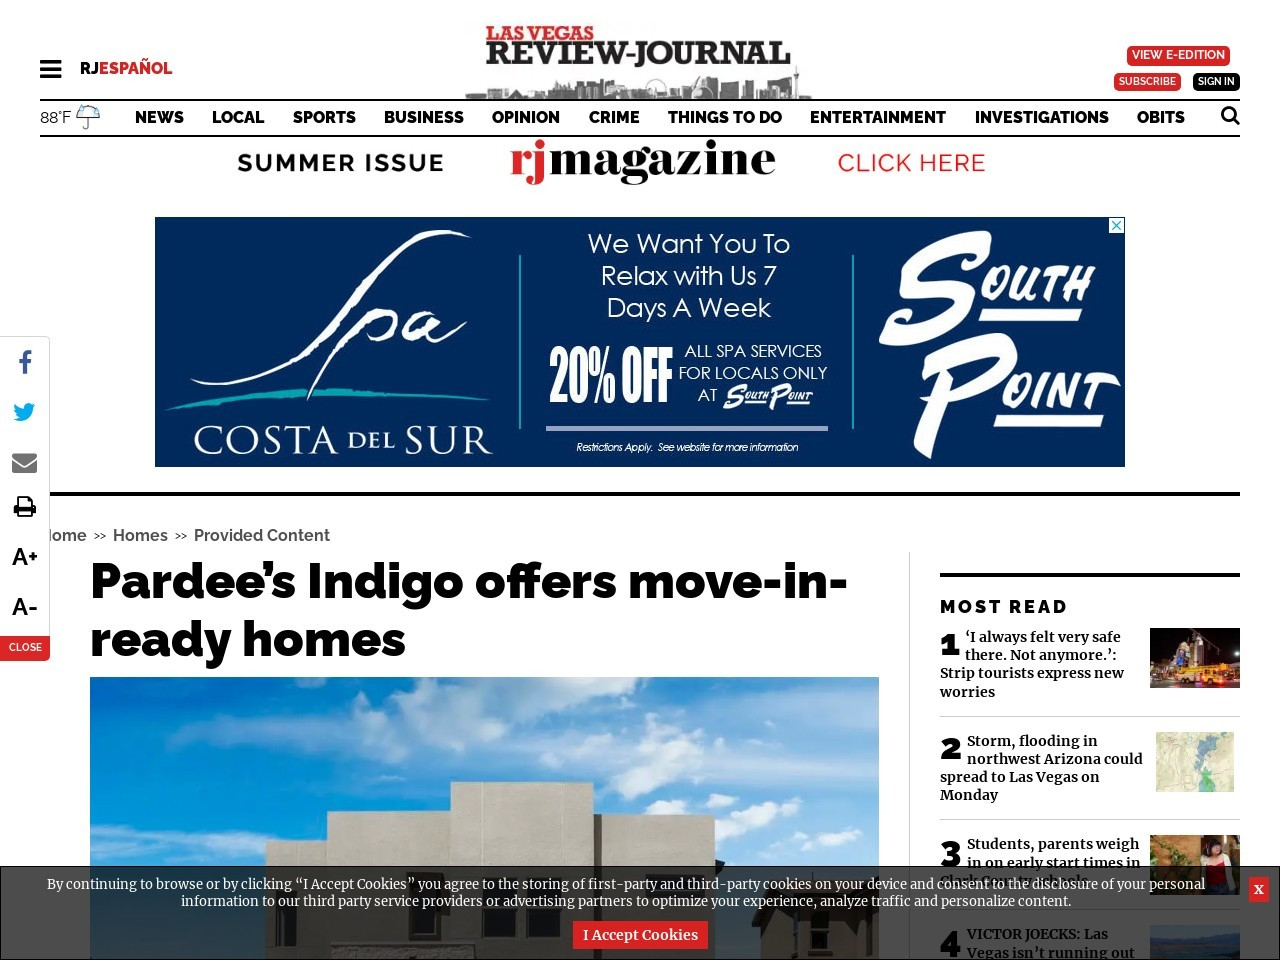 Pardee's Indigo offers move-in-ready homes